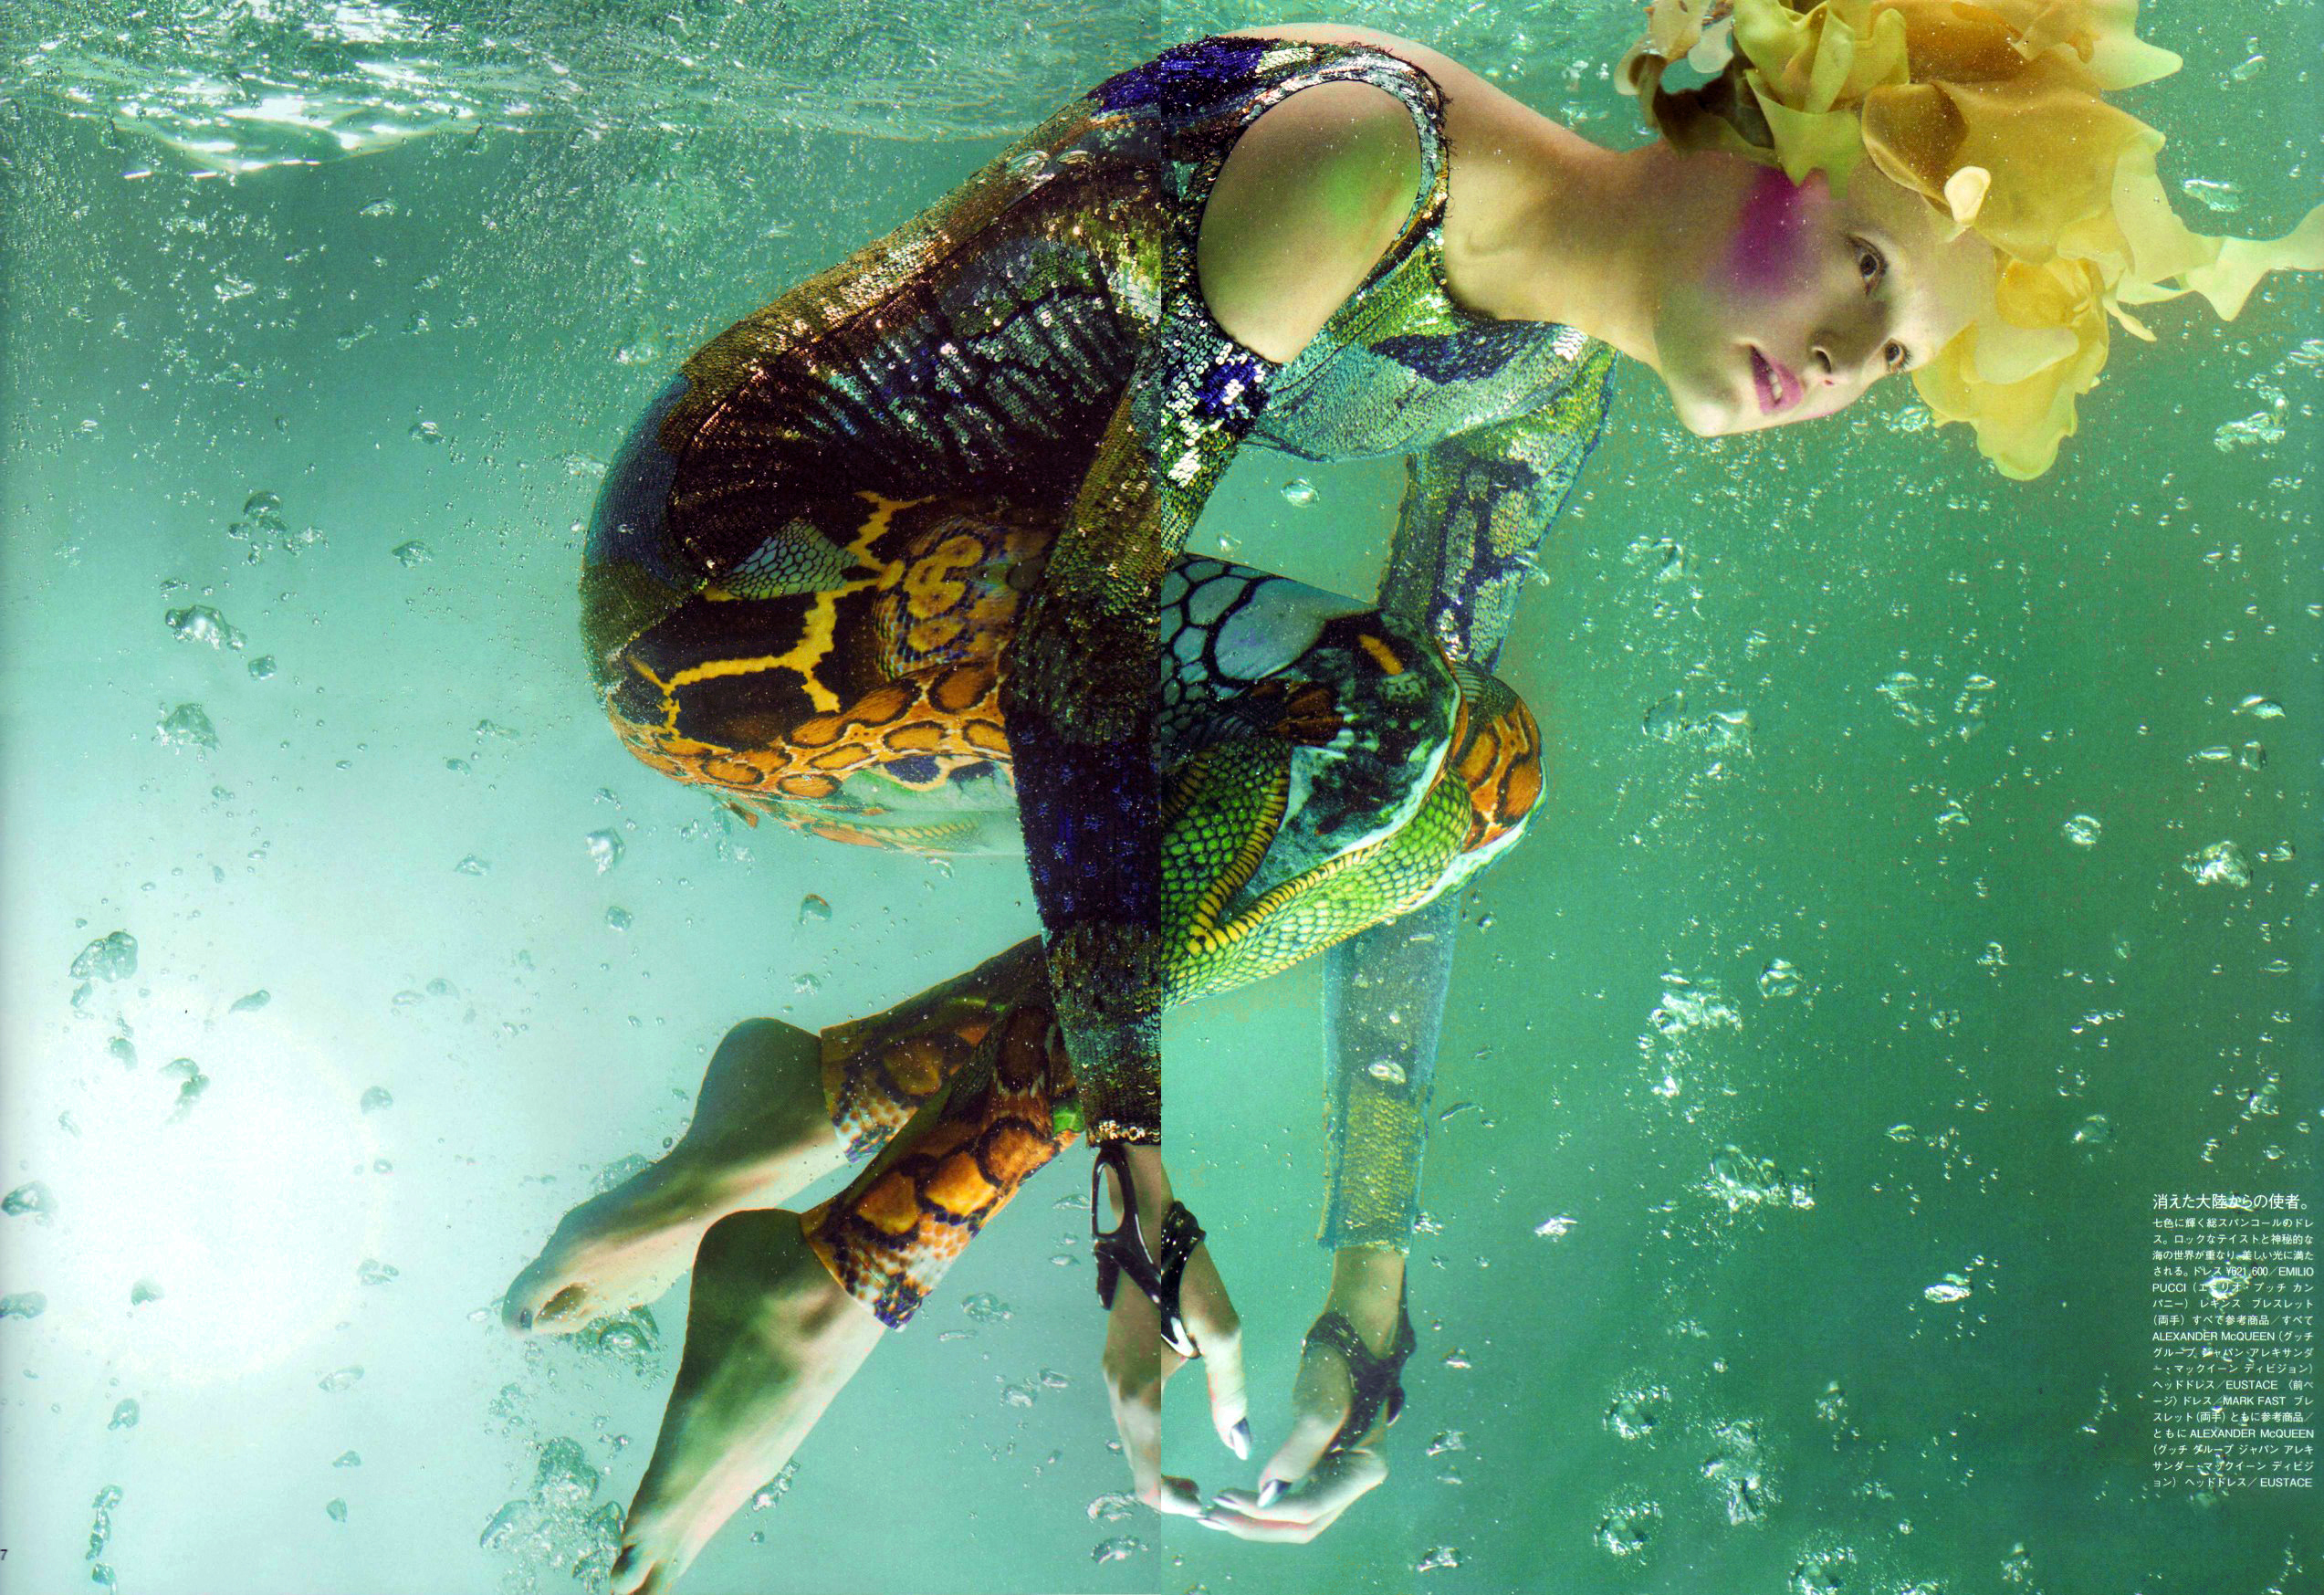 """The Girl From Atlantis"" Vogue Nippon May 2010, Model: Alia Kostromichova, Photographer: Solve Sundsbo"